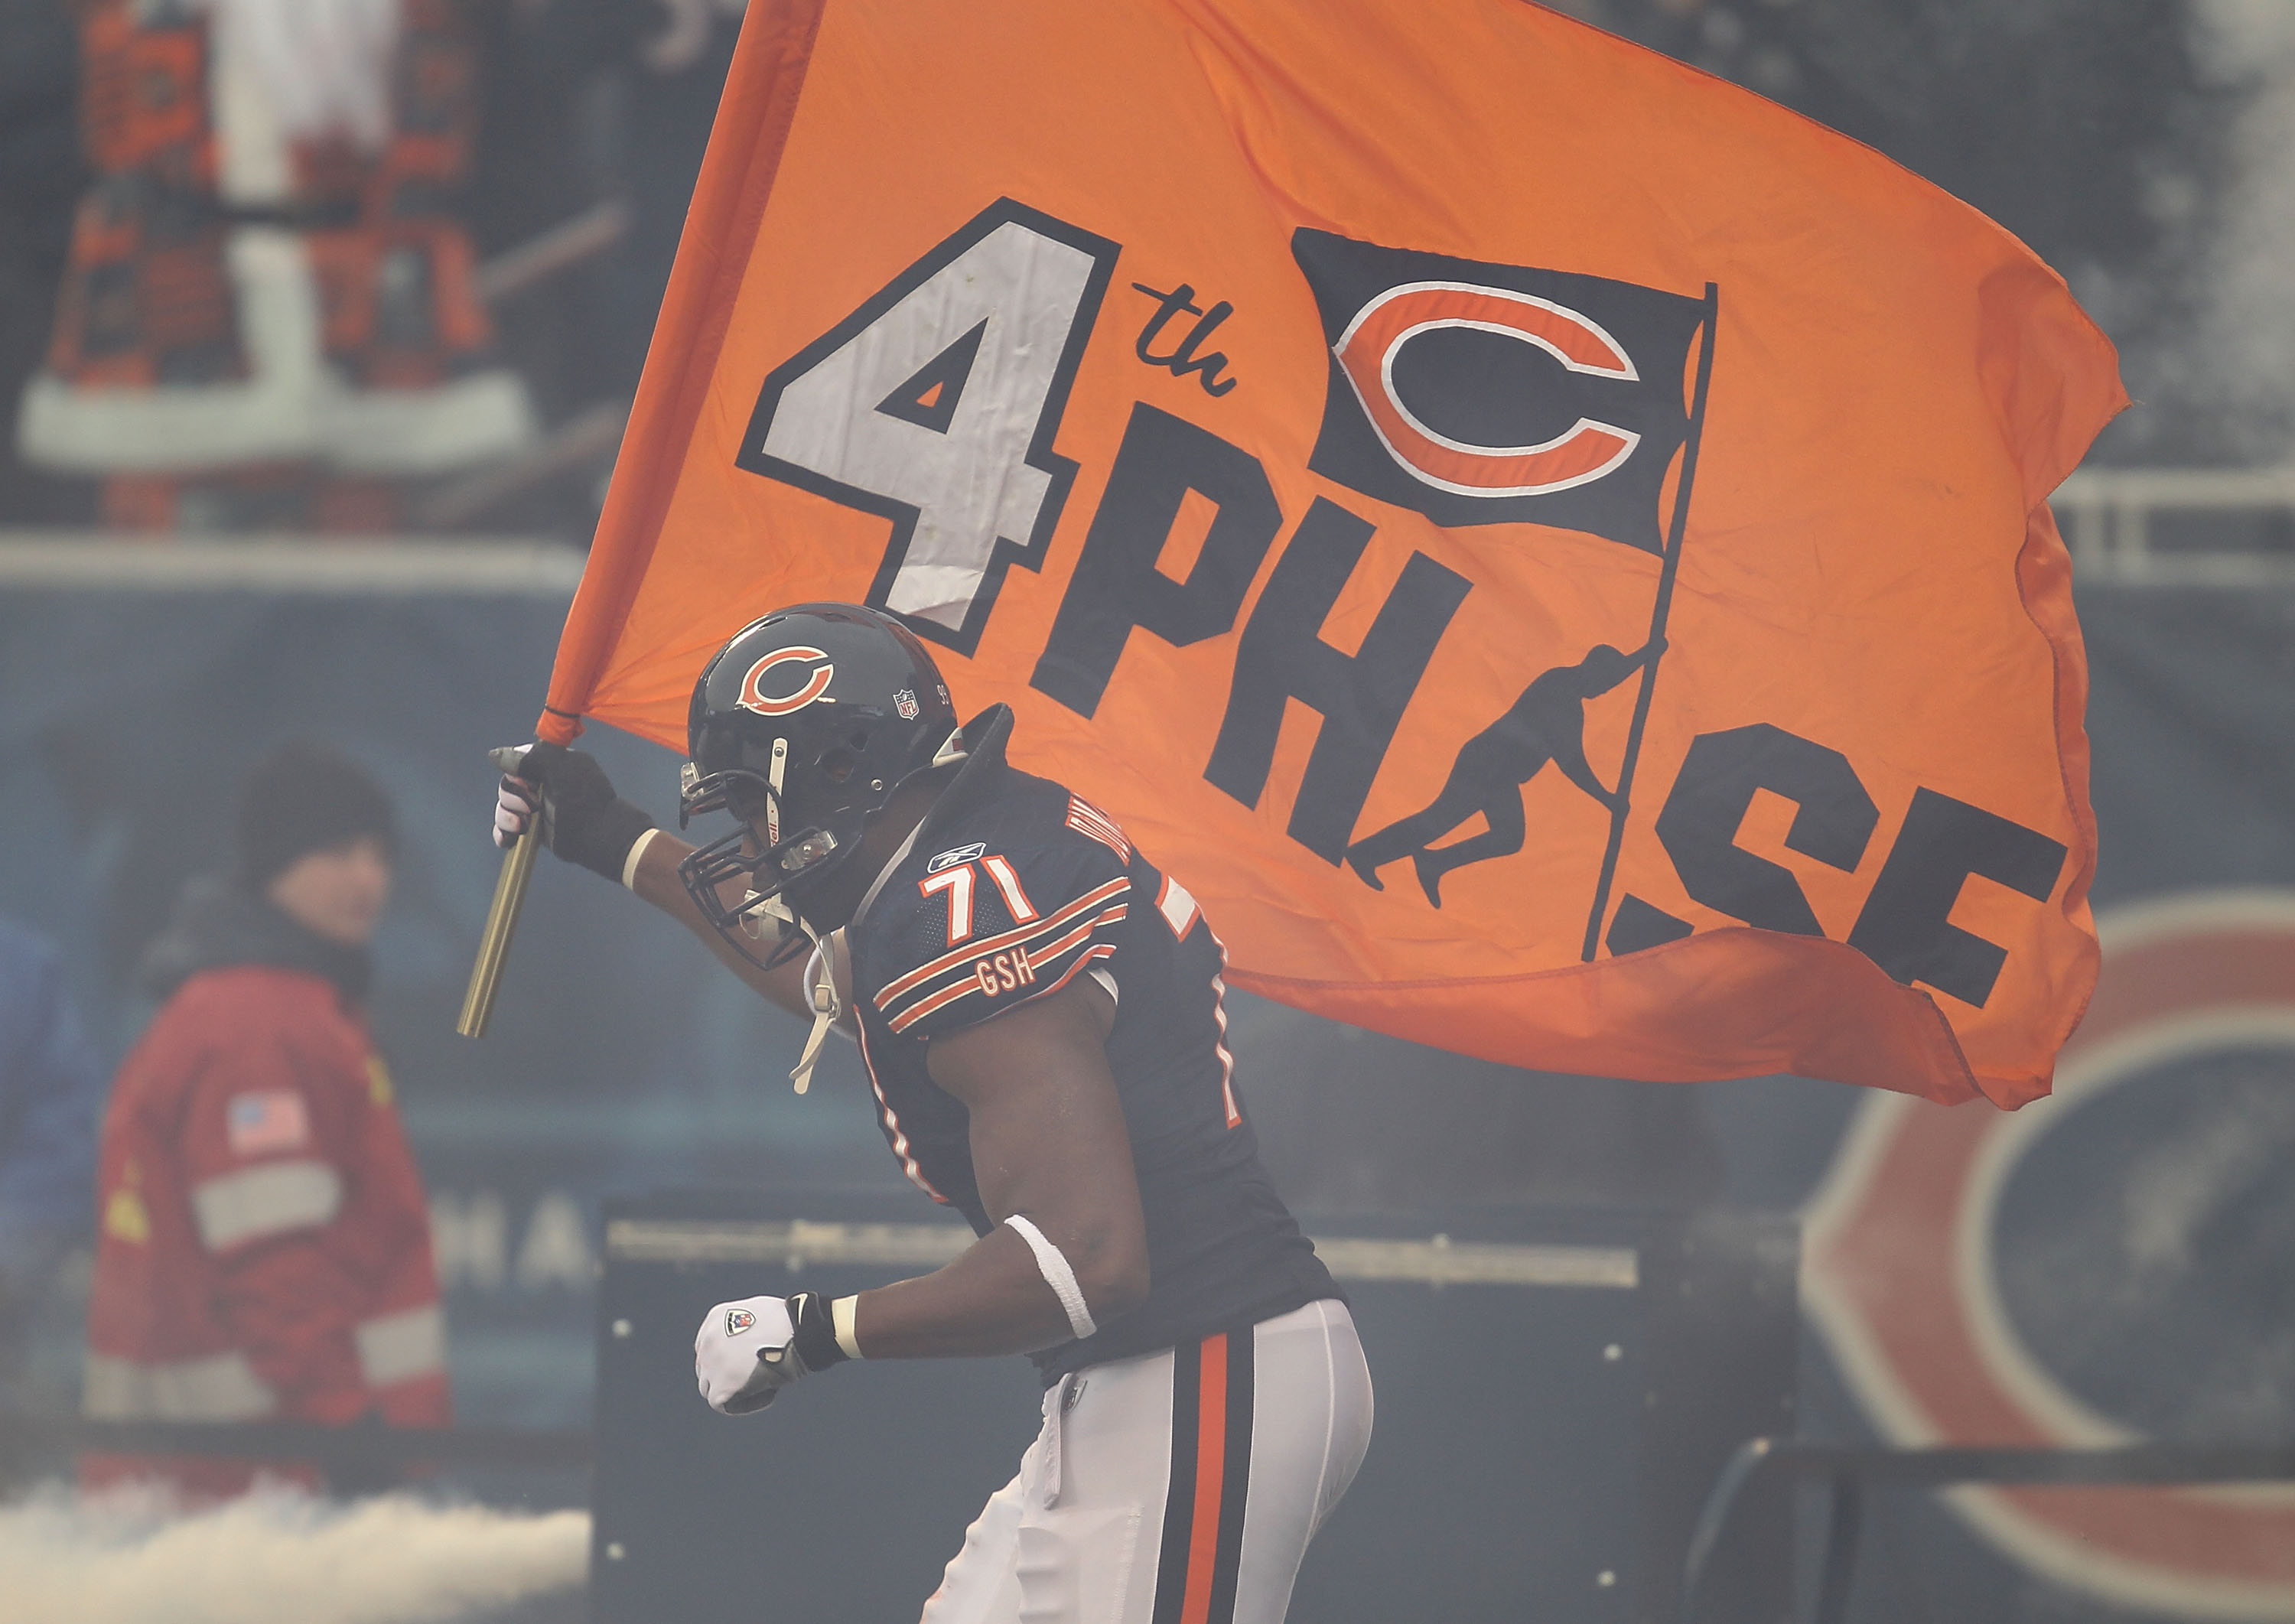 CHICAGO, IL - DECEMBER 26: Israel Idonije #71 of the Chicago Bears runs onto the field during player introductions before a game against the New York Jets at Soldier Field on December 26, 2010 in Chicago, Illinois. The Bears defeated the Jets 38-34. (Phot